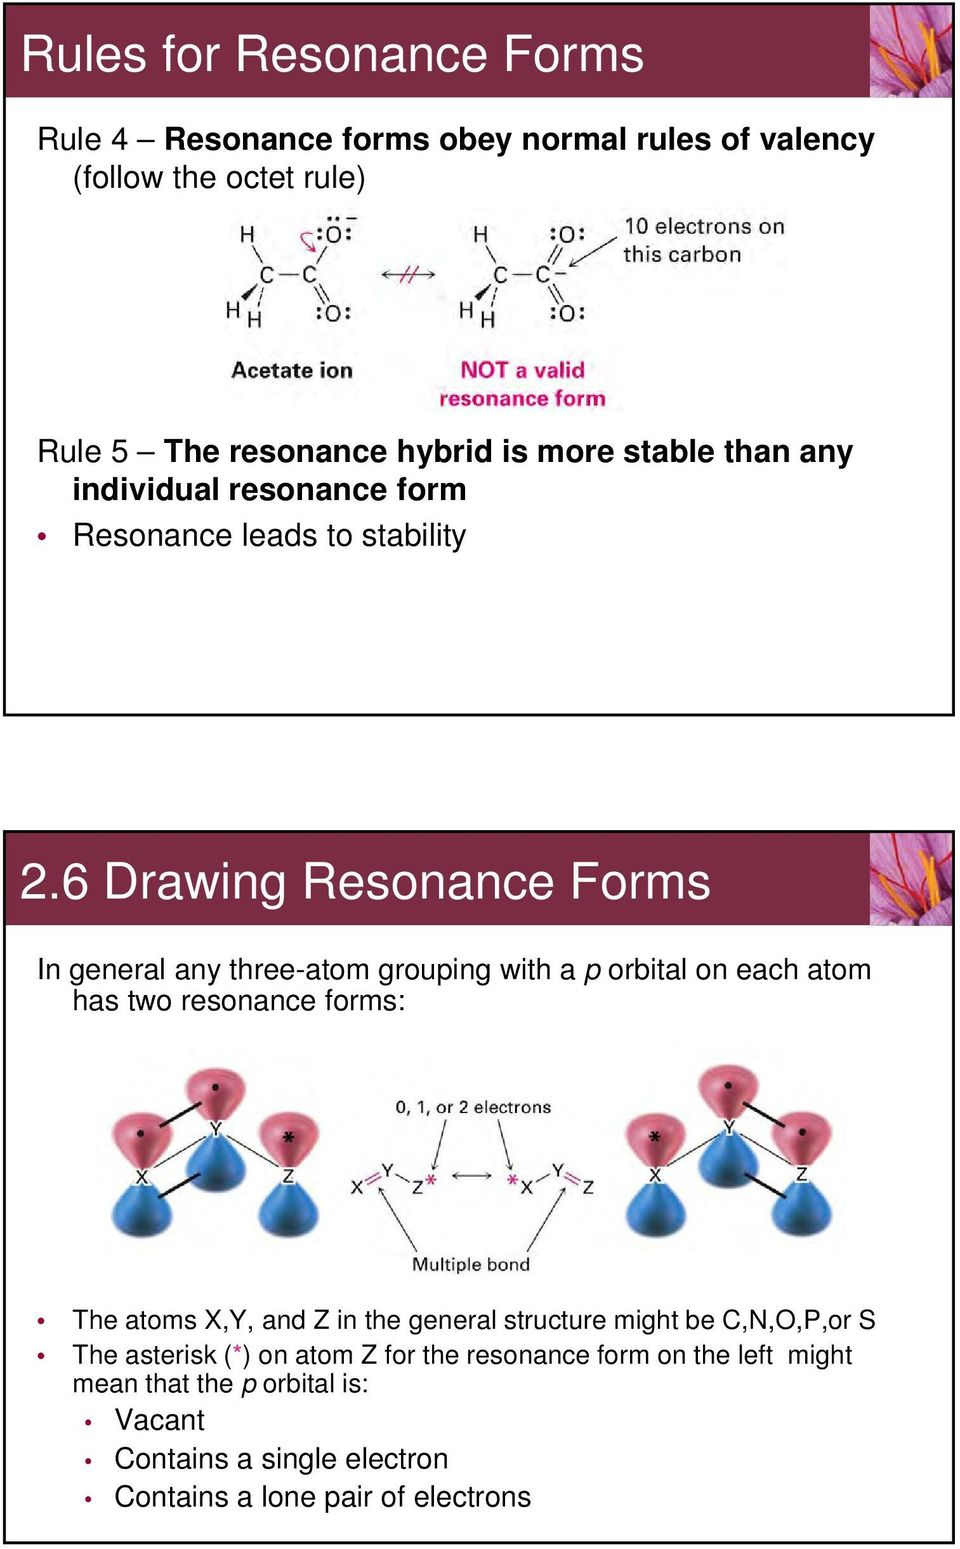 6 Drawing Resonance Forms In general any three-atom grouping with a p orbital on each atom has two resonance forms: The atoms X,Y, and Z in